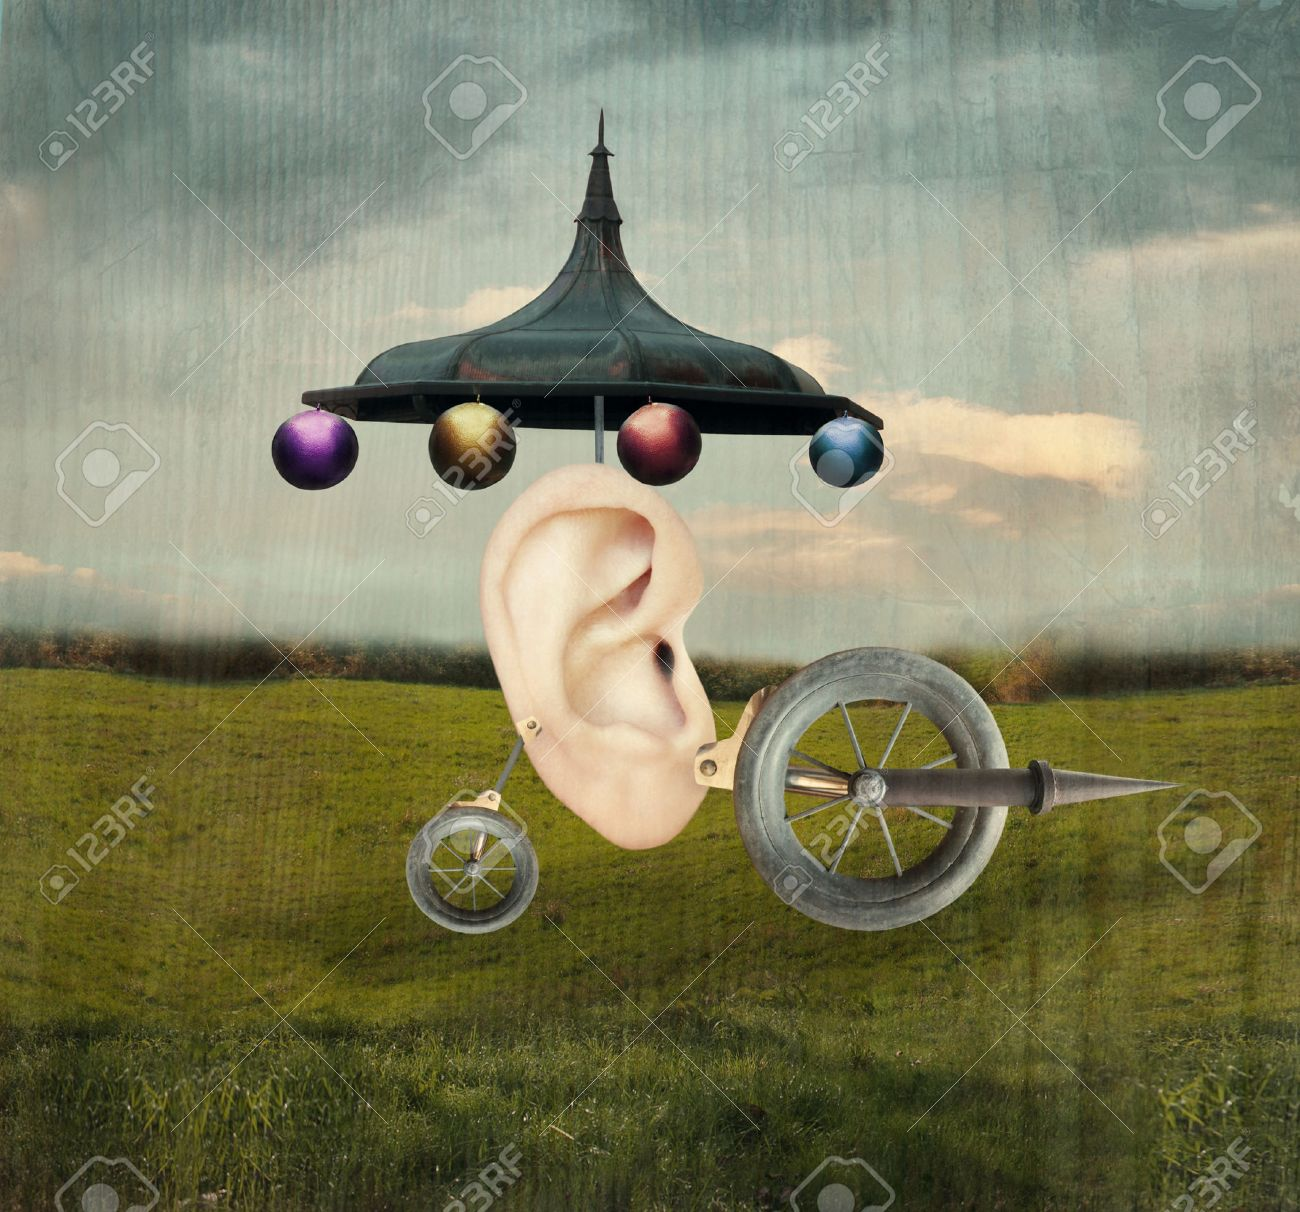 Beautiful artistic image that represent a human ear with surreal wheels and mechanic object in a surreal Stock Photo - 22837331